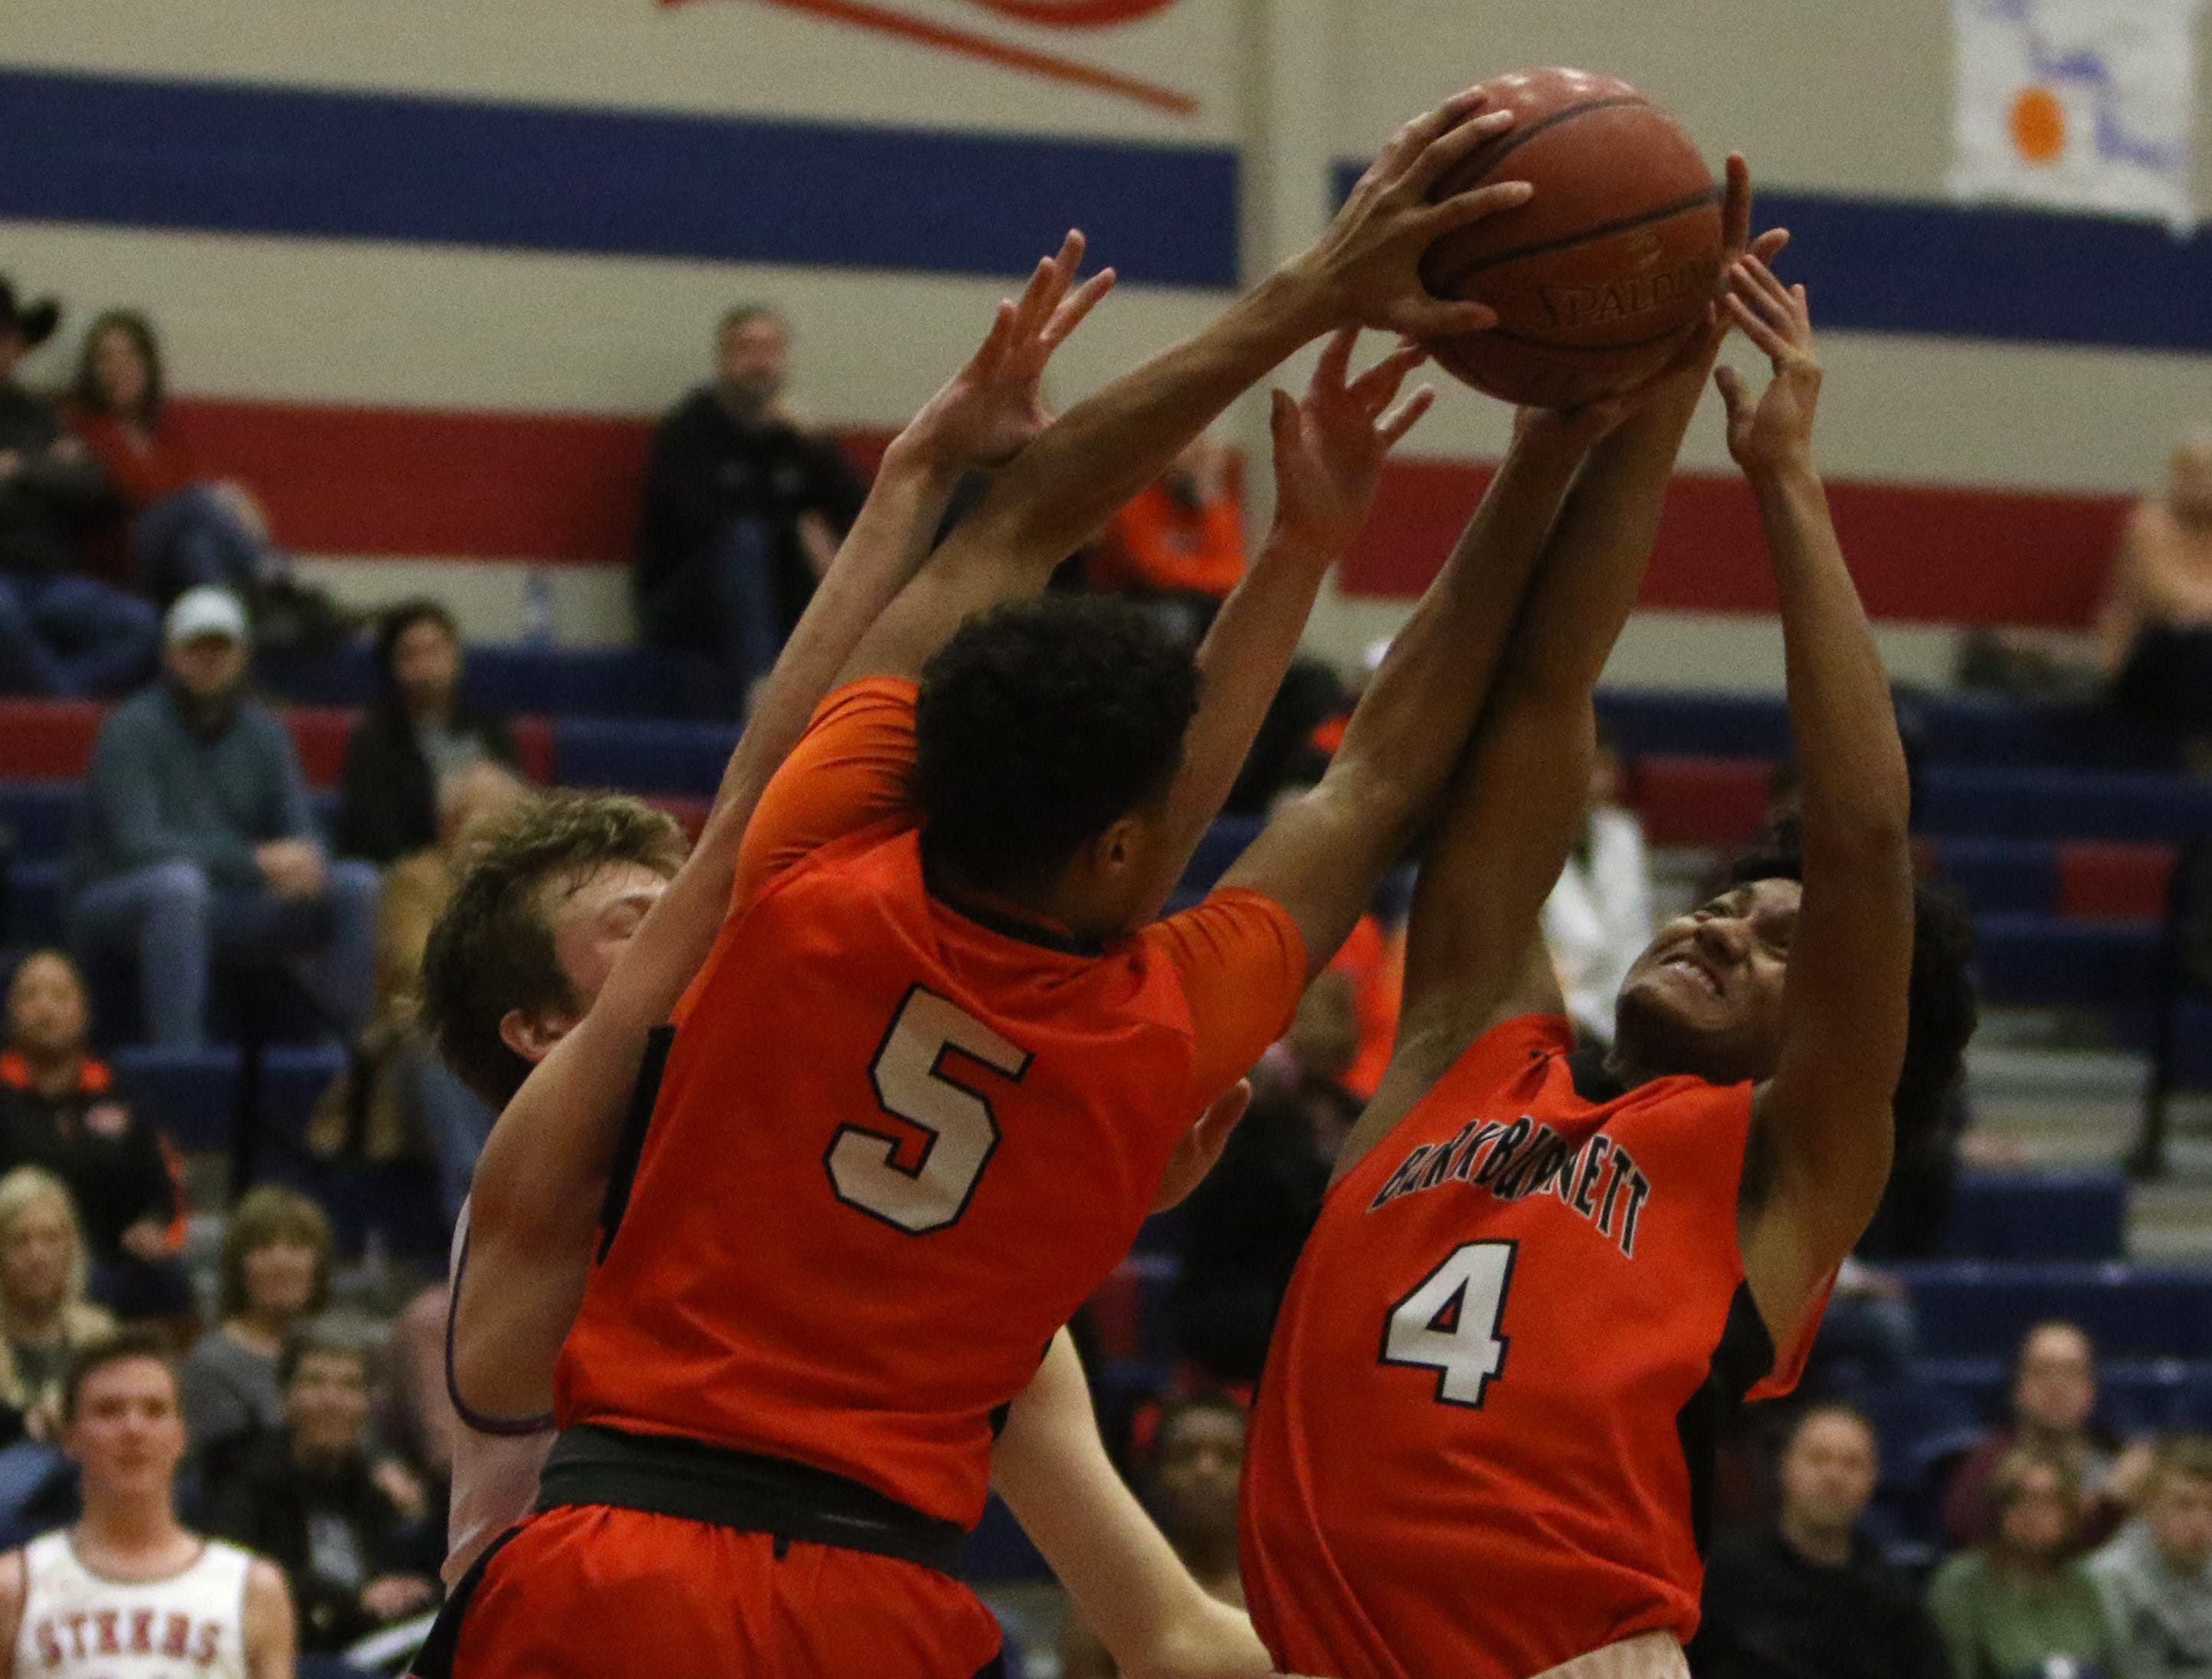 Burkburnett's Jaevion Moreland (4) and Jaden Arnold (5) reach for the rebound in the game against Graham Friday, Feb. 8, 2019, in Graham. The Steers defeated the Bulldogs 75-70.